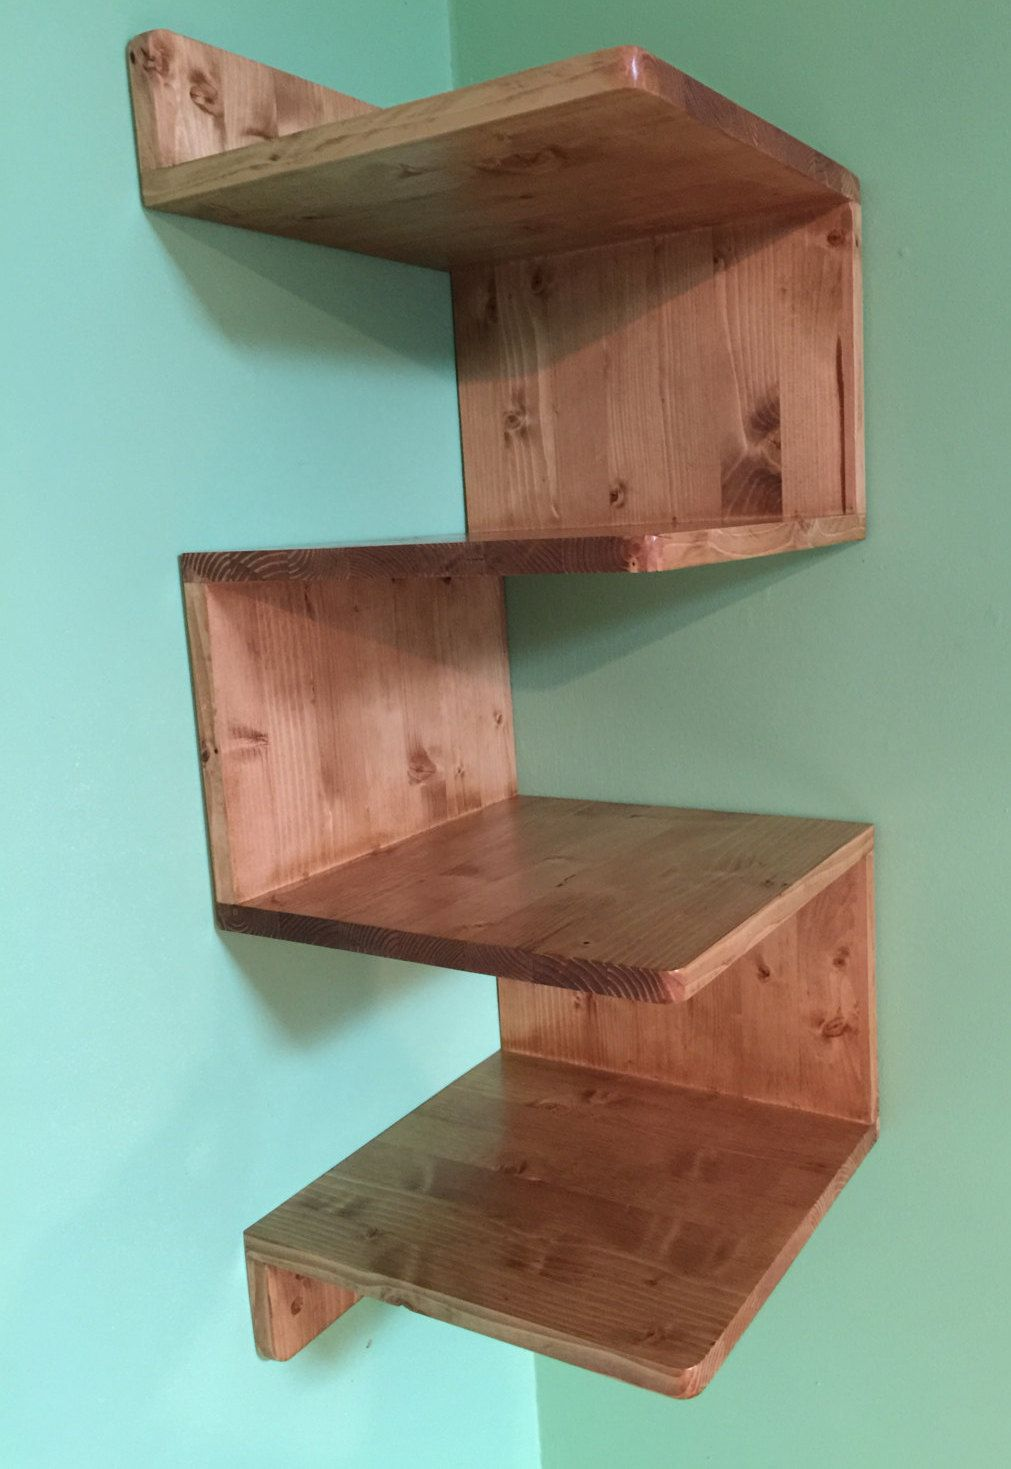 Zig Zag Corner Shelf Custommade Shelves Handmade Unit Stained Gift Solid Wood Shelving Wall By